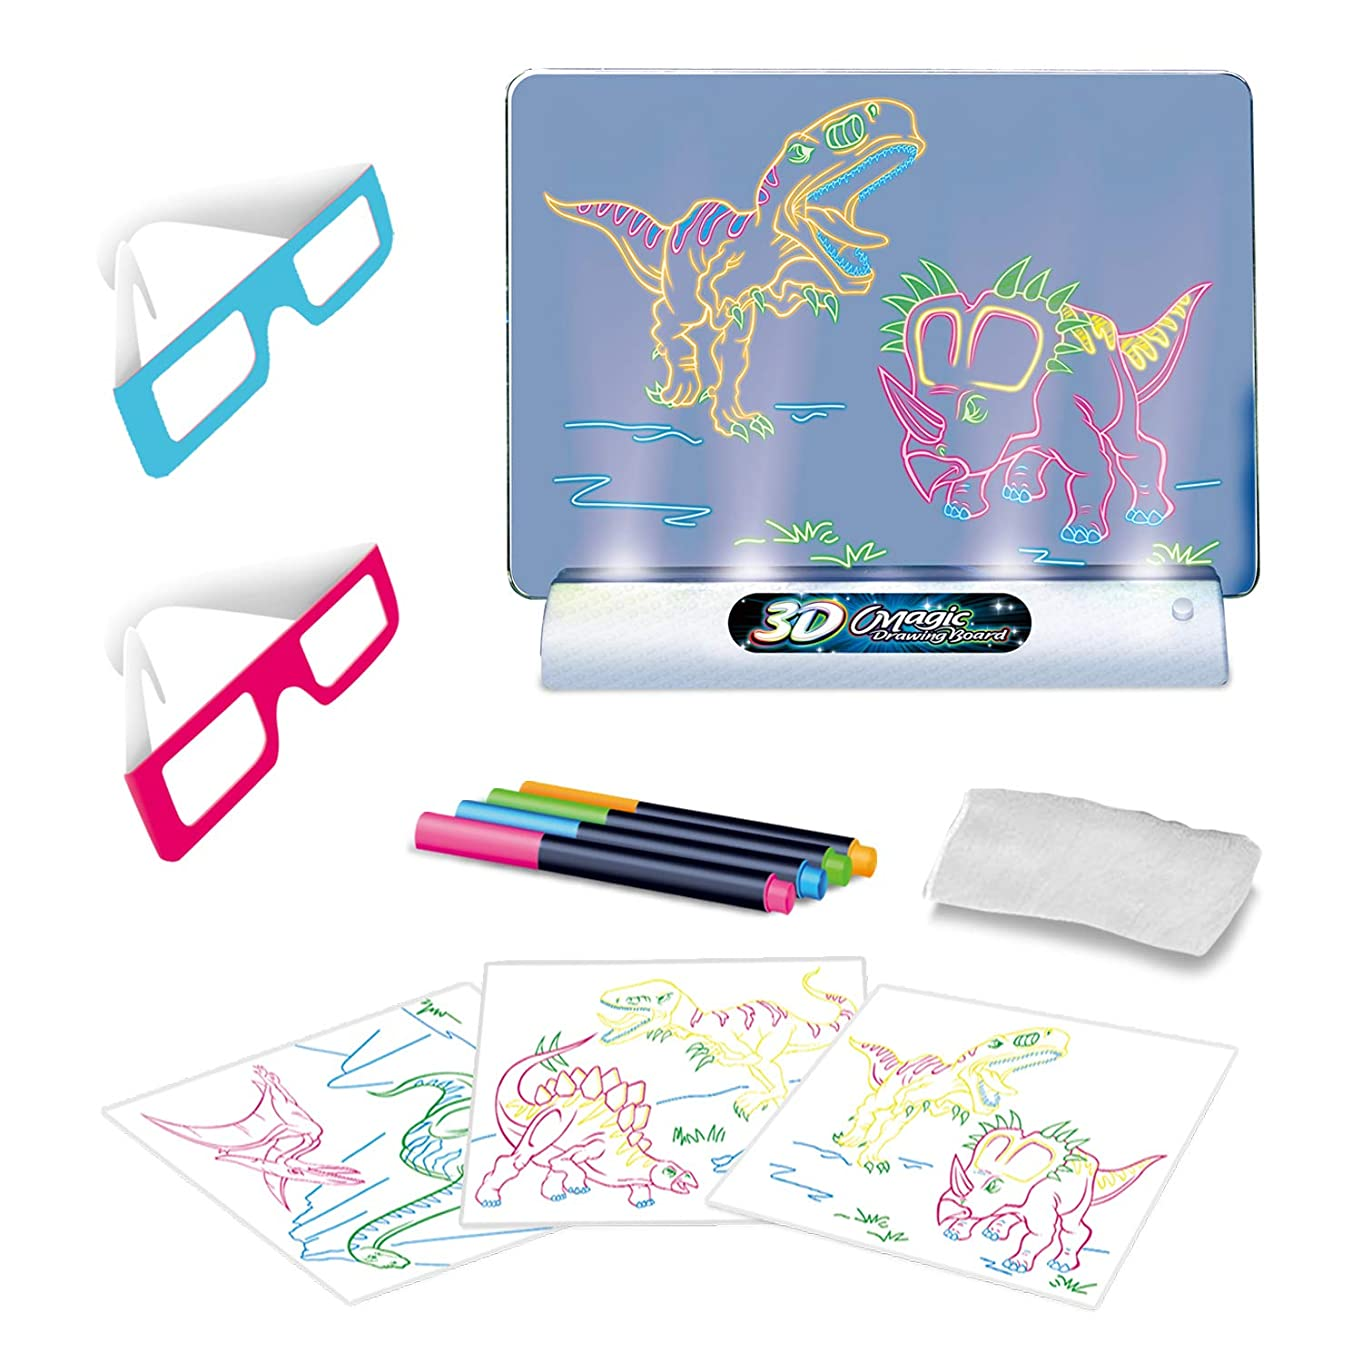 Magic pad for Kids Light up - 3D Light Up Drawing Board – Educational Dinosaur Doodle Magic Glow Pad with 2 3D Glasses - Gift for Kids/Toddlers Boys & Girls Ages 3 -12 Years Old